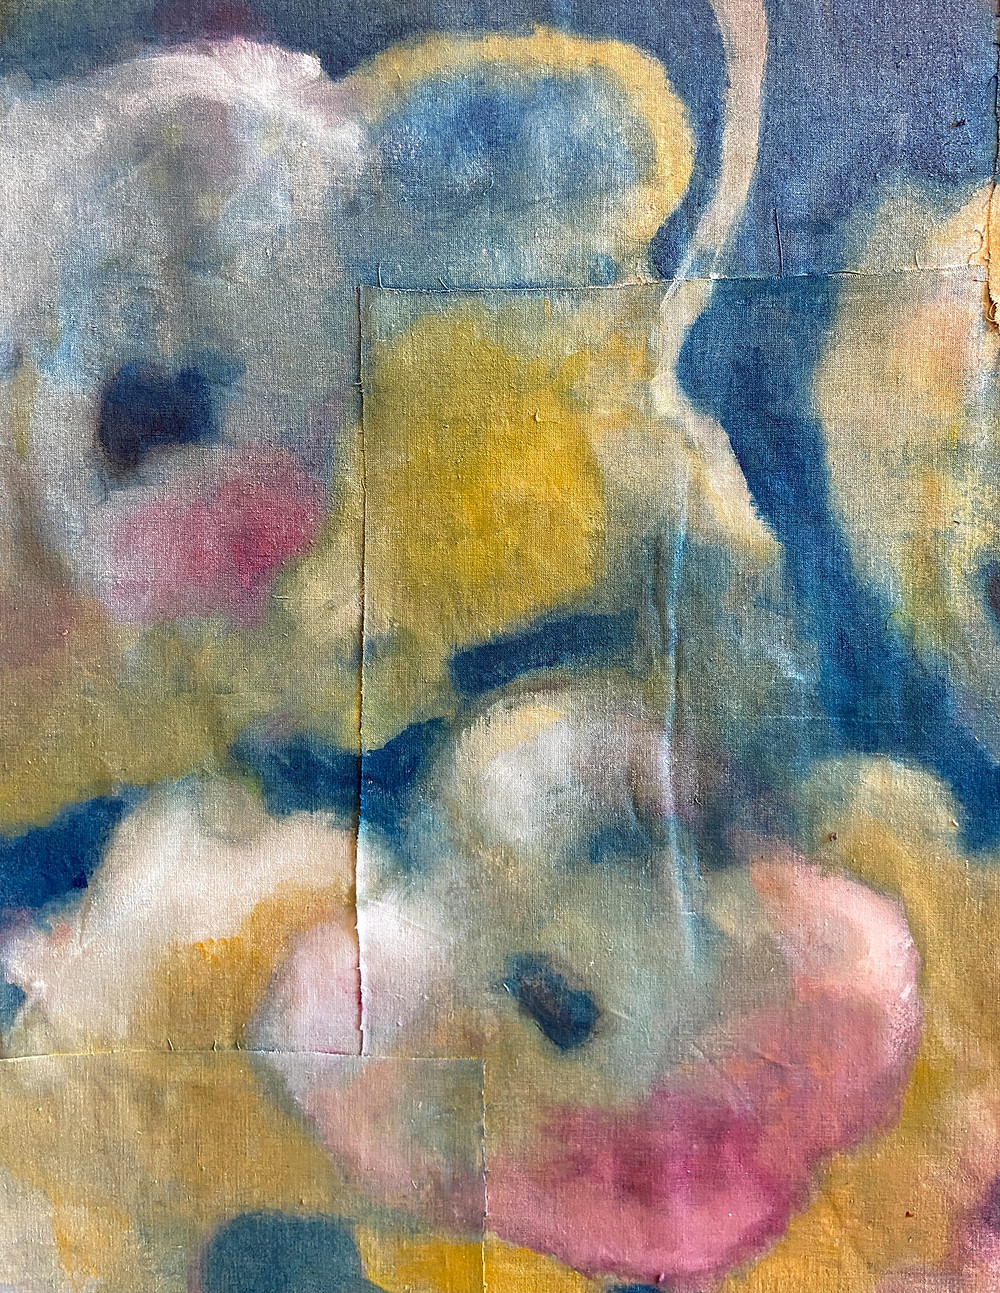 The cracks on the canvas are a characteristic of Elisa Carutti's artworks